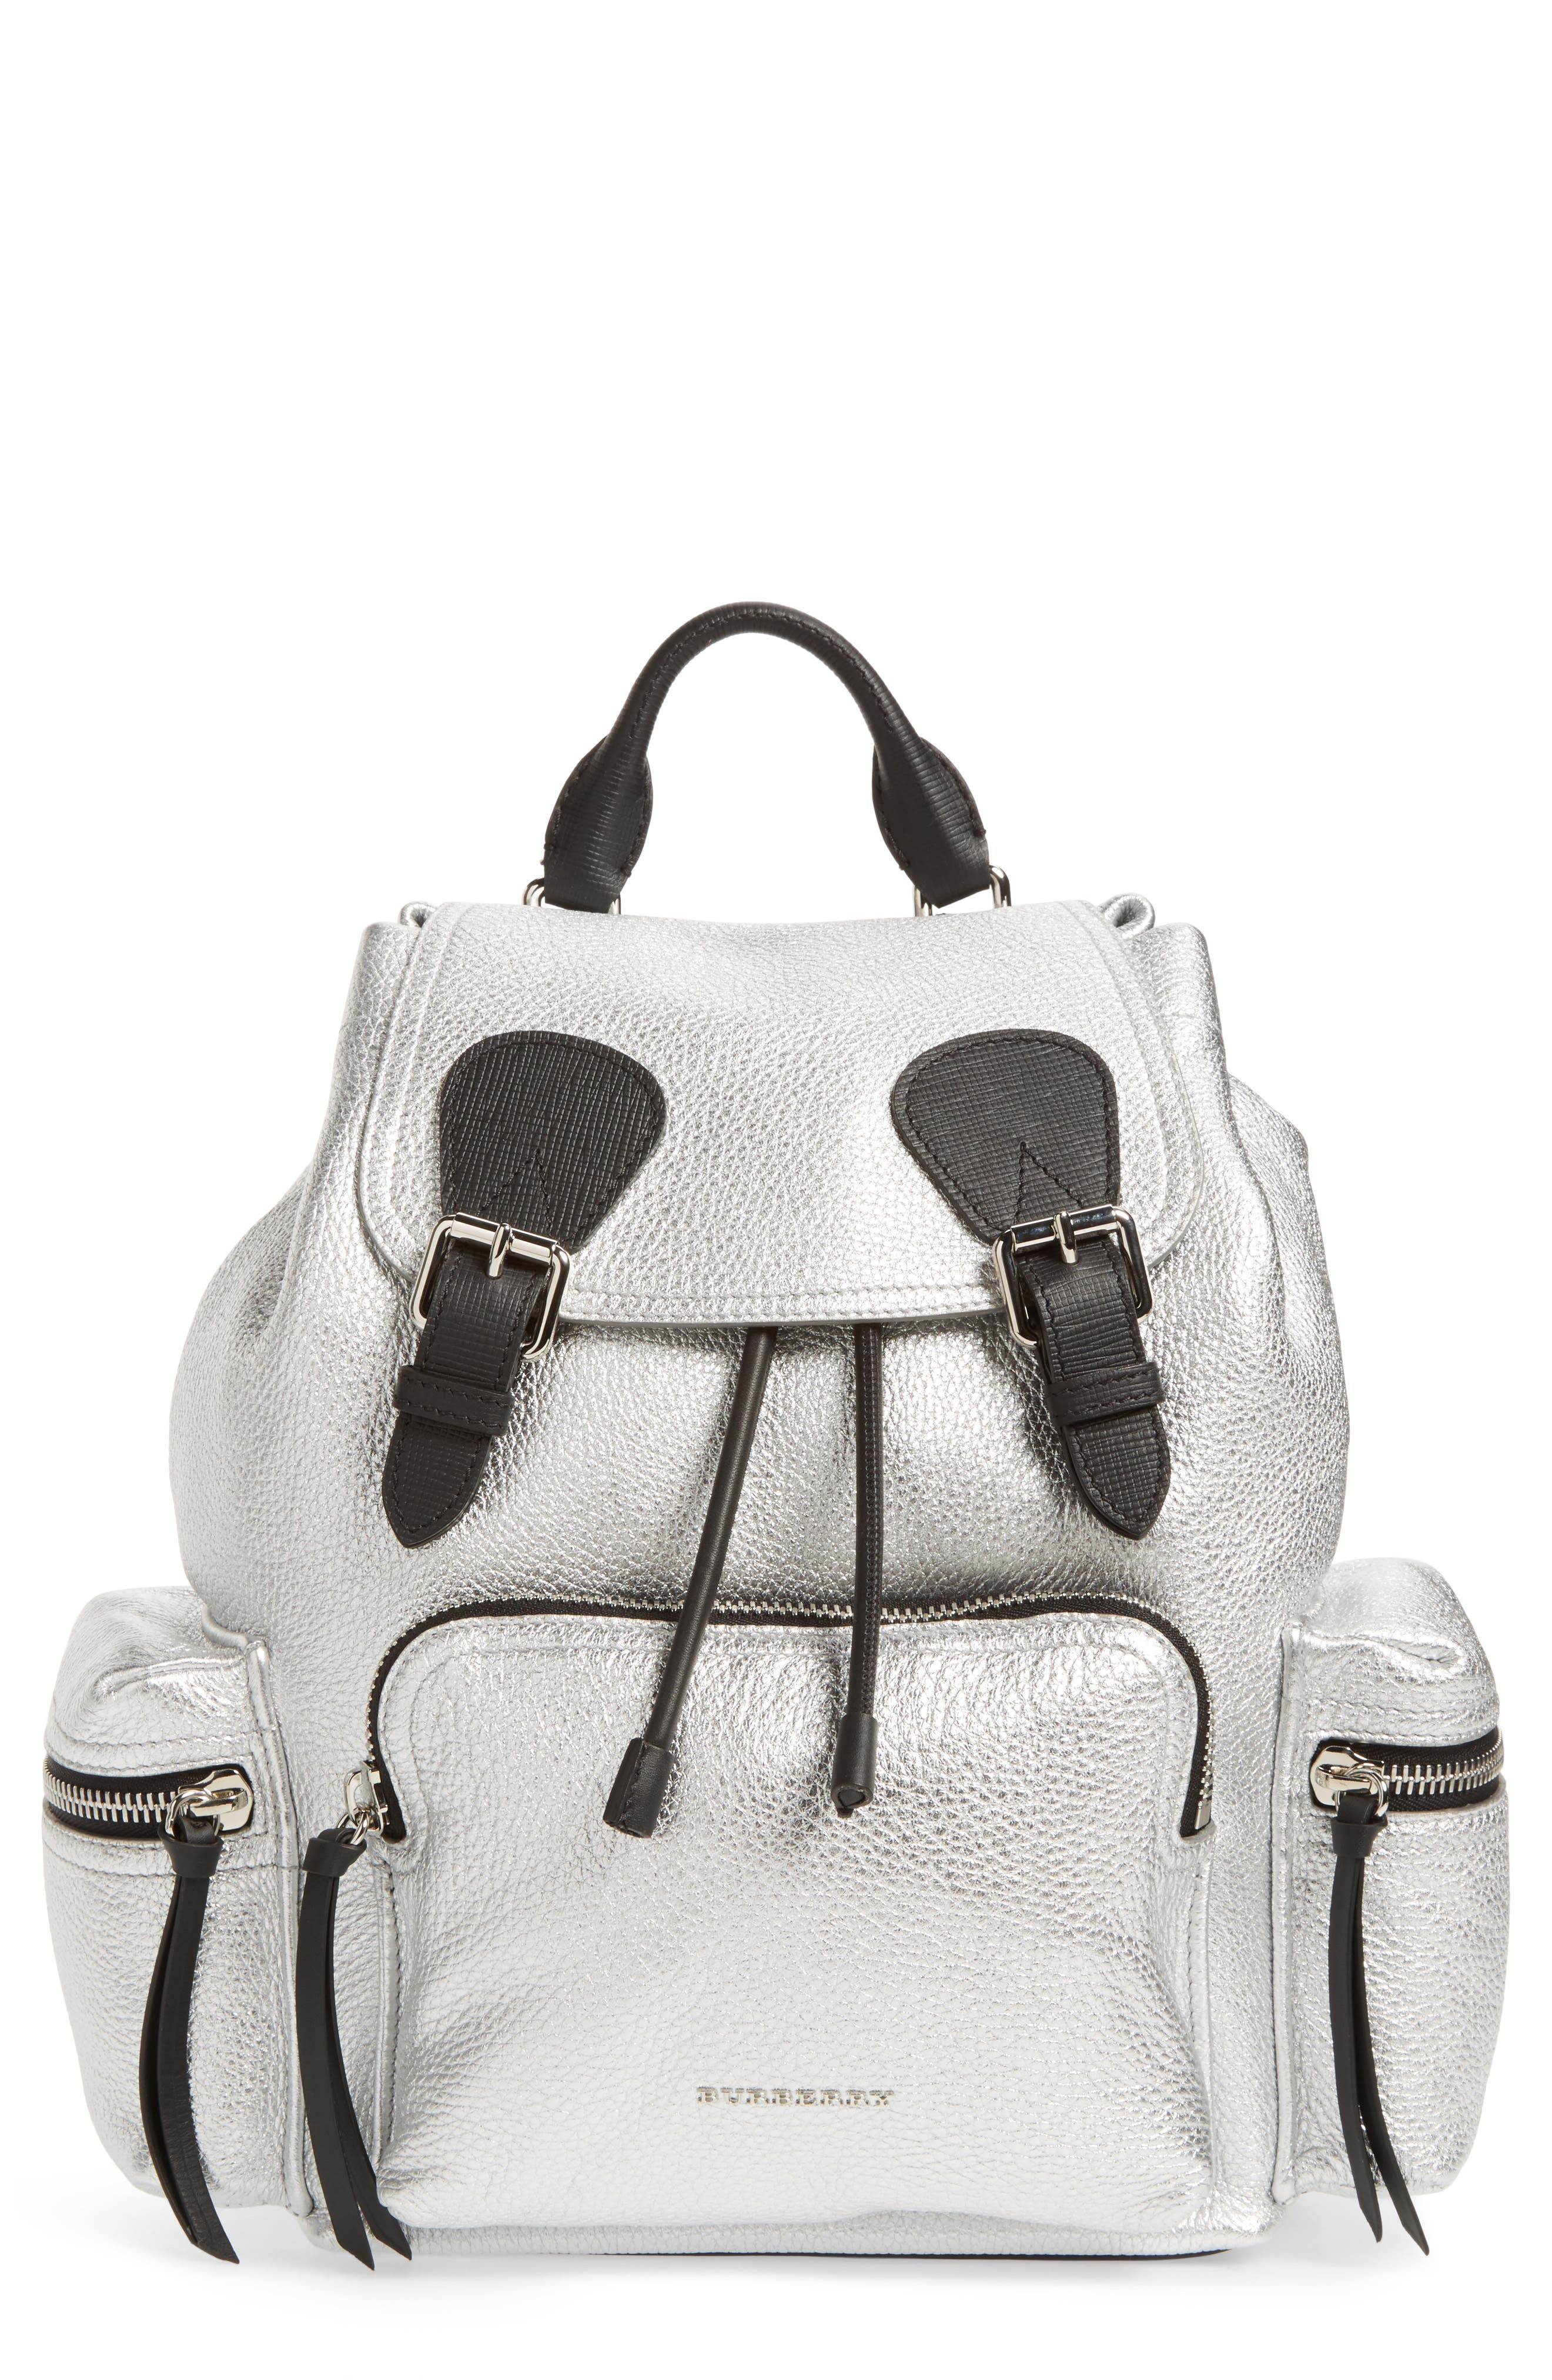 Medium Rucksack Metallic Leather Backpack,                             Main thumbnail 1, color,                             Silver